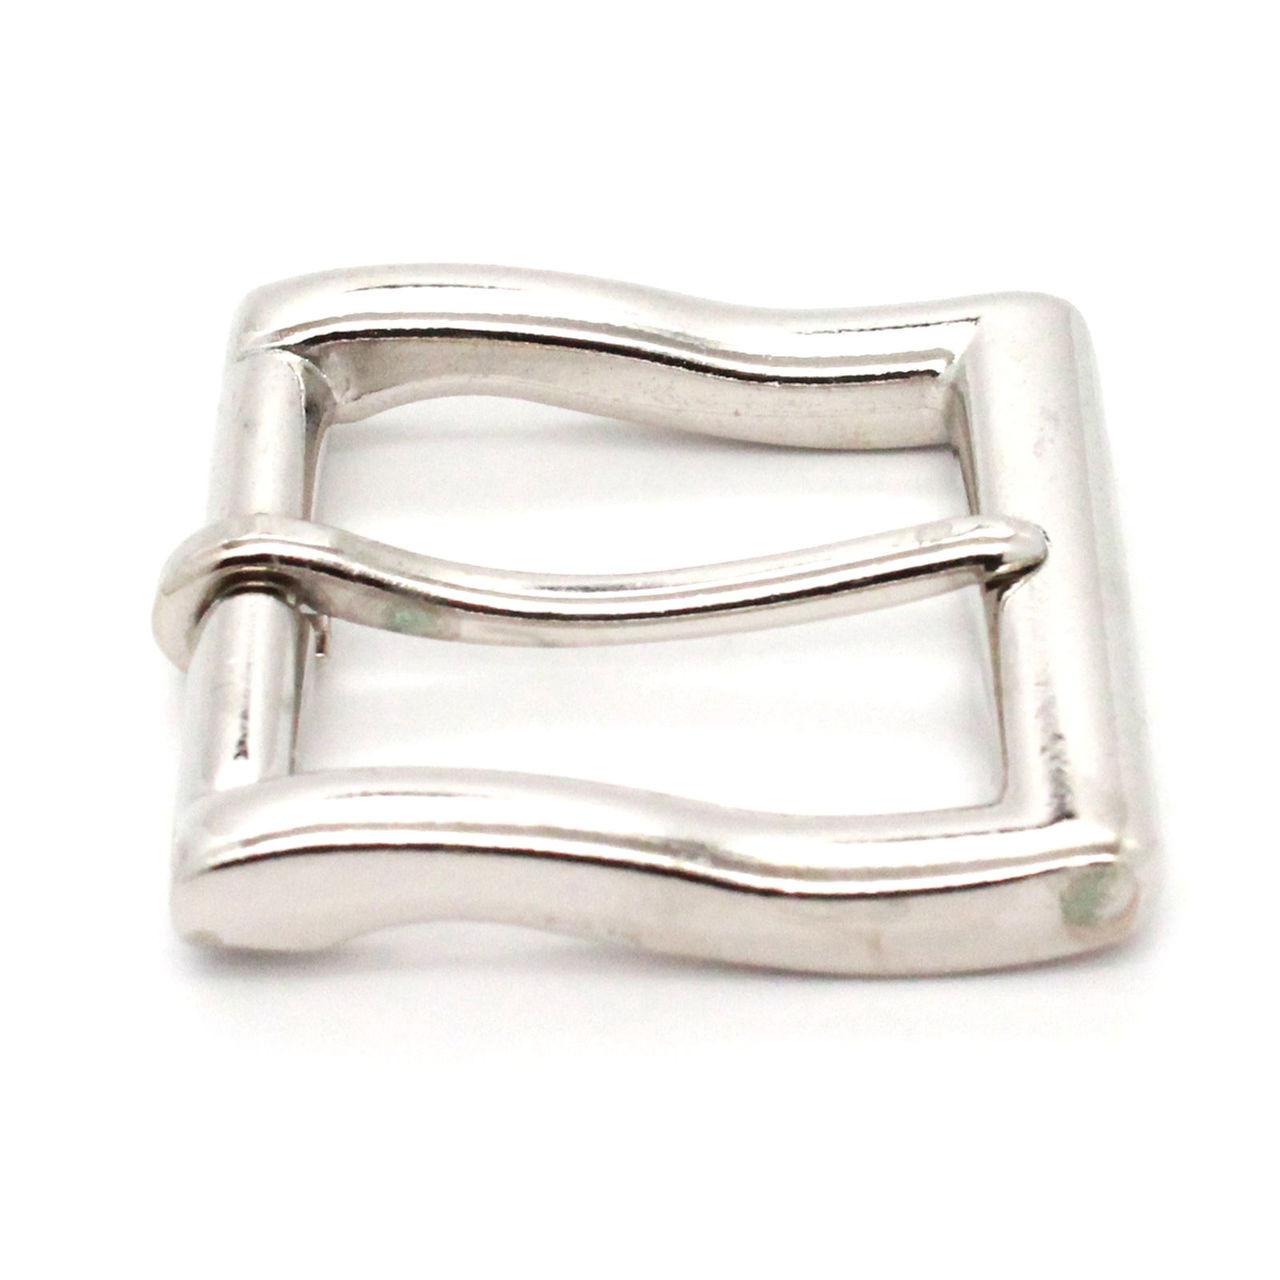 Square heel bar 1.5 inch nickel plate side